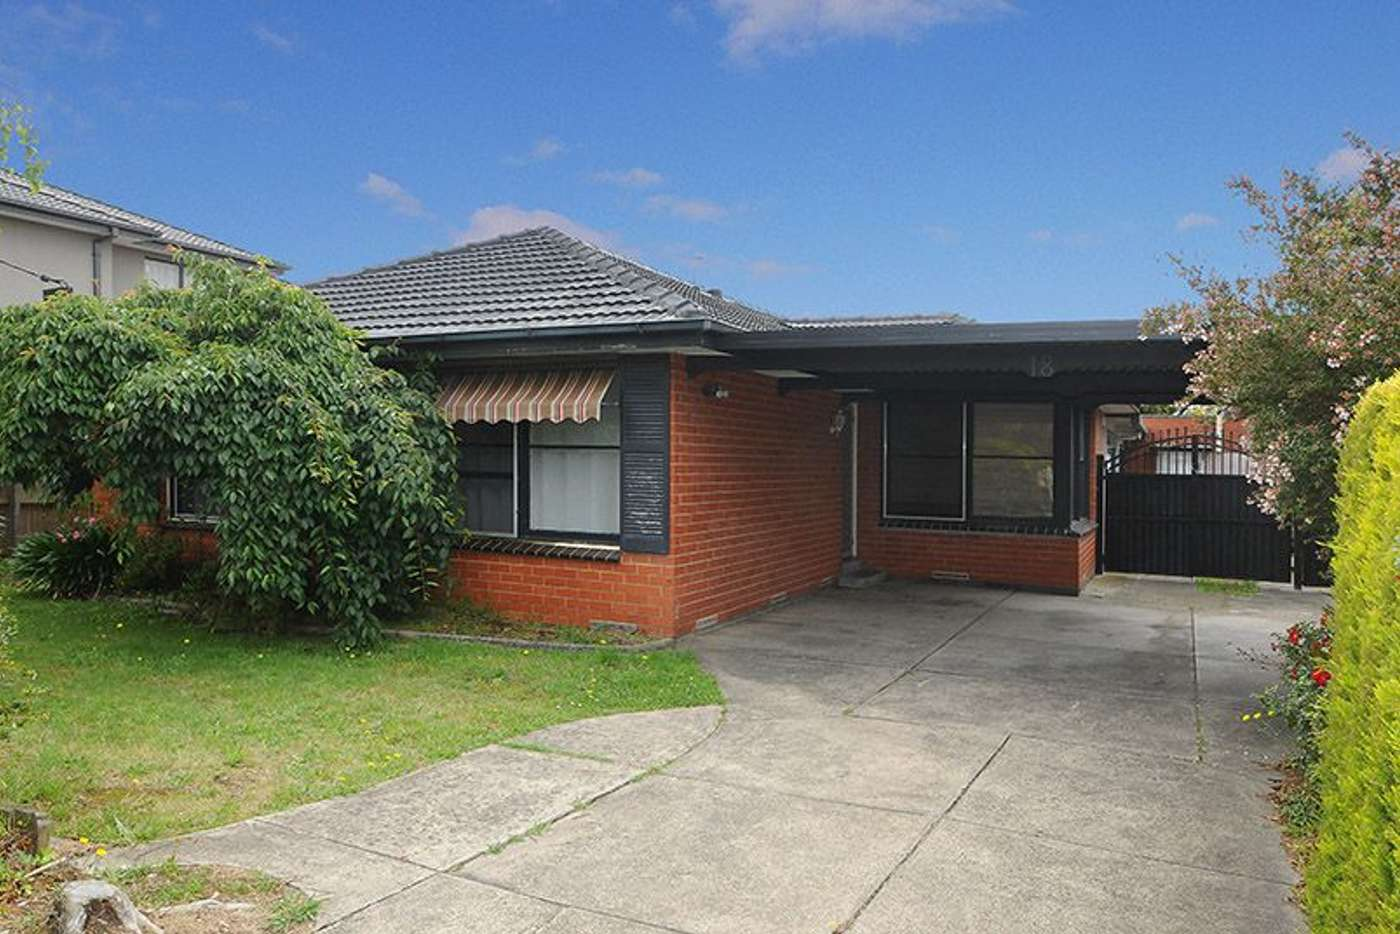 Seventh view of Homely house listing, 18 Pindari Street, Glen Waverley VIC 3150